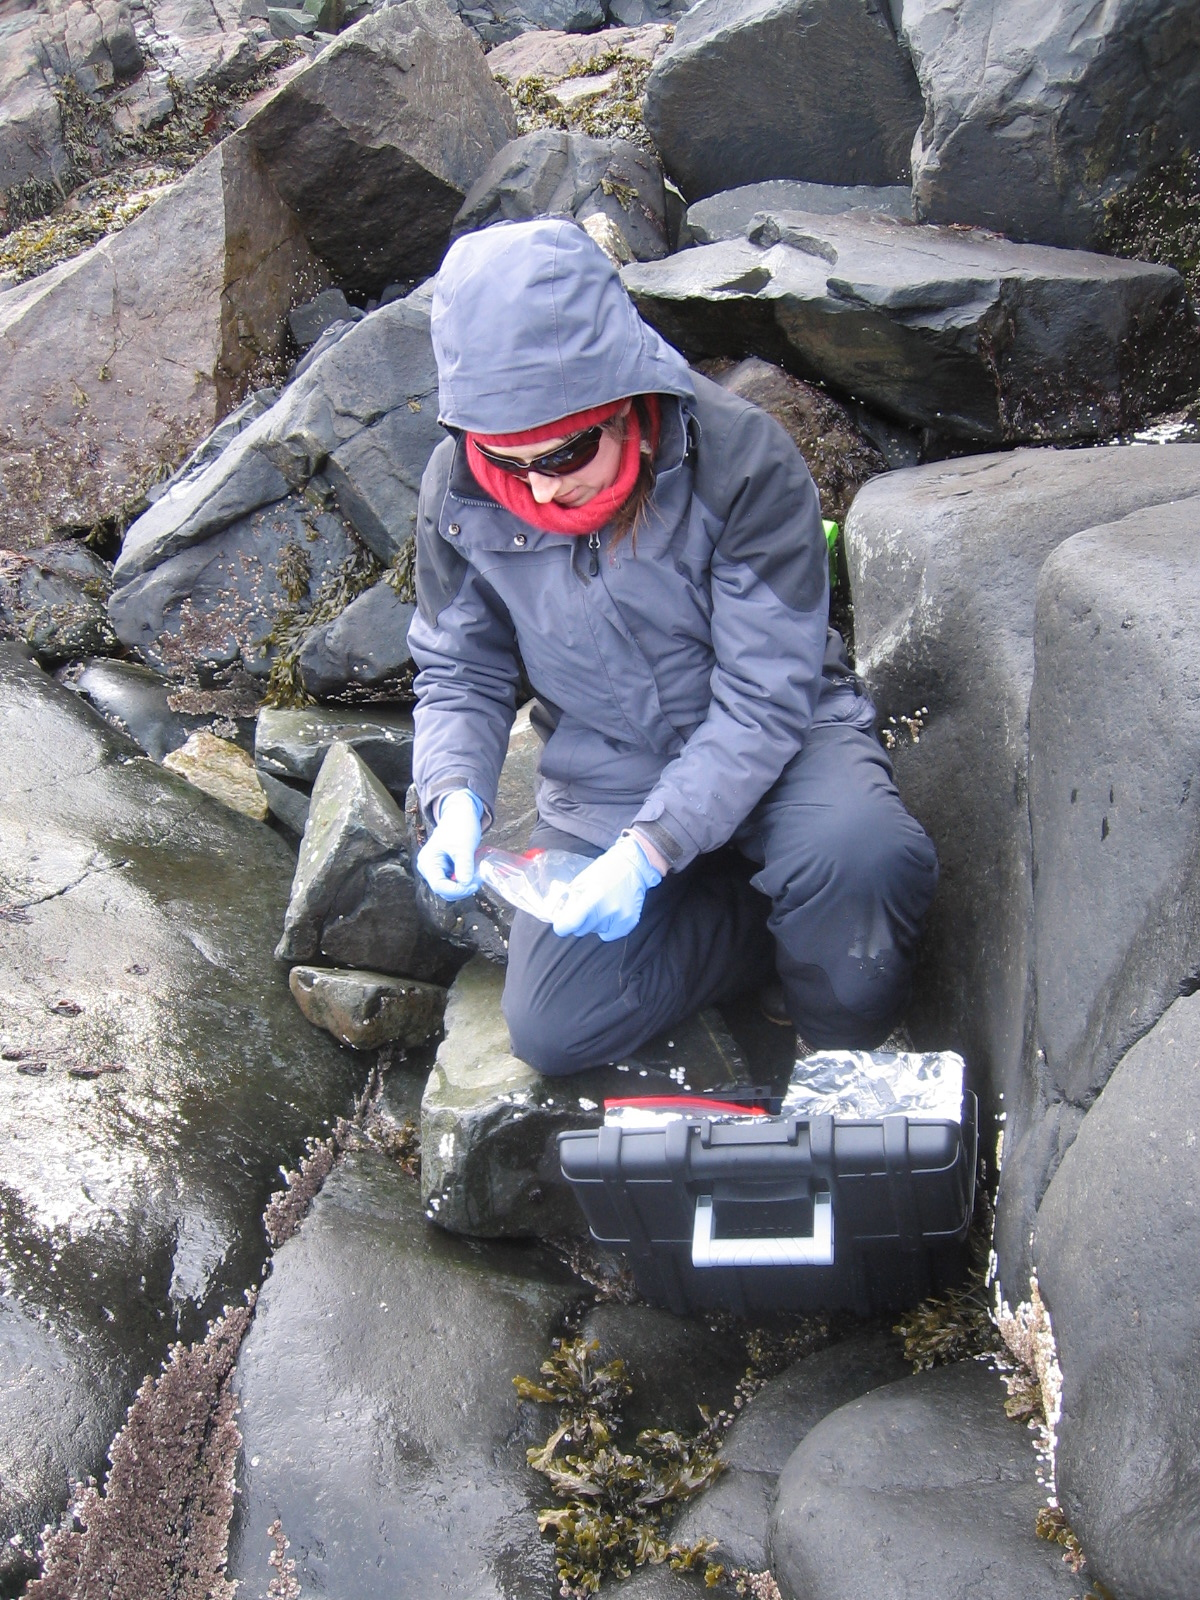 Collecting samples during the frigid cold weather of February